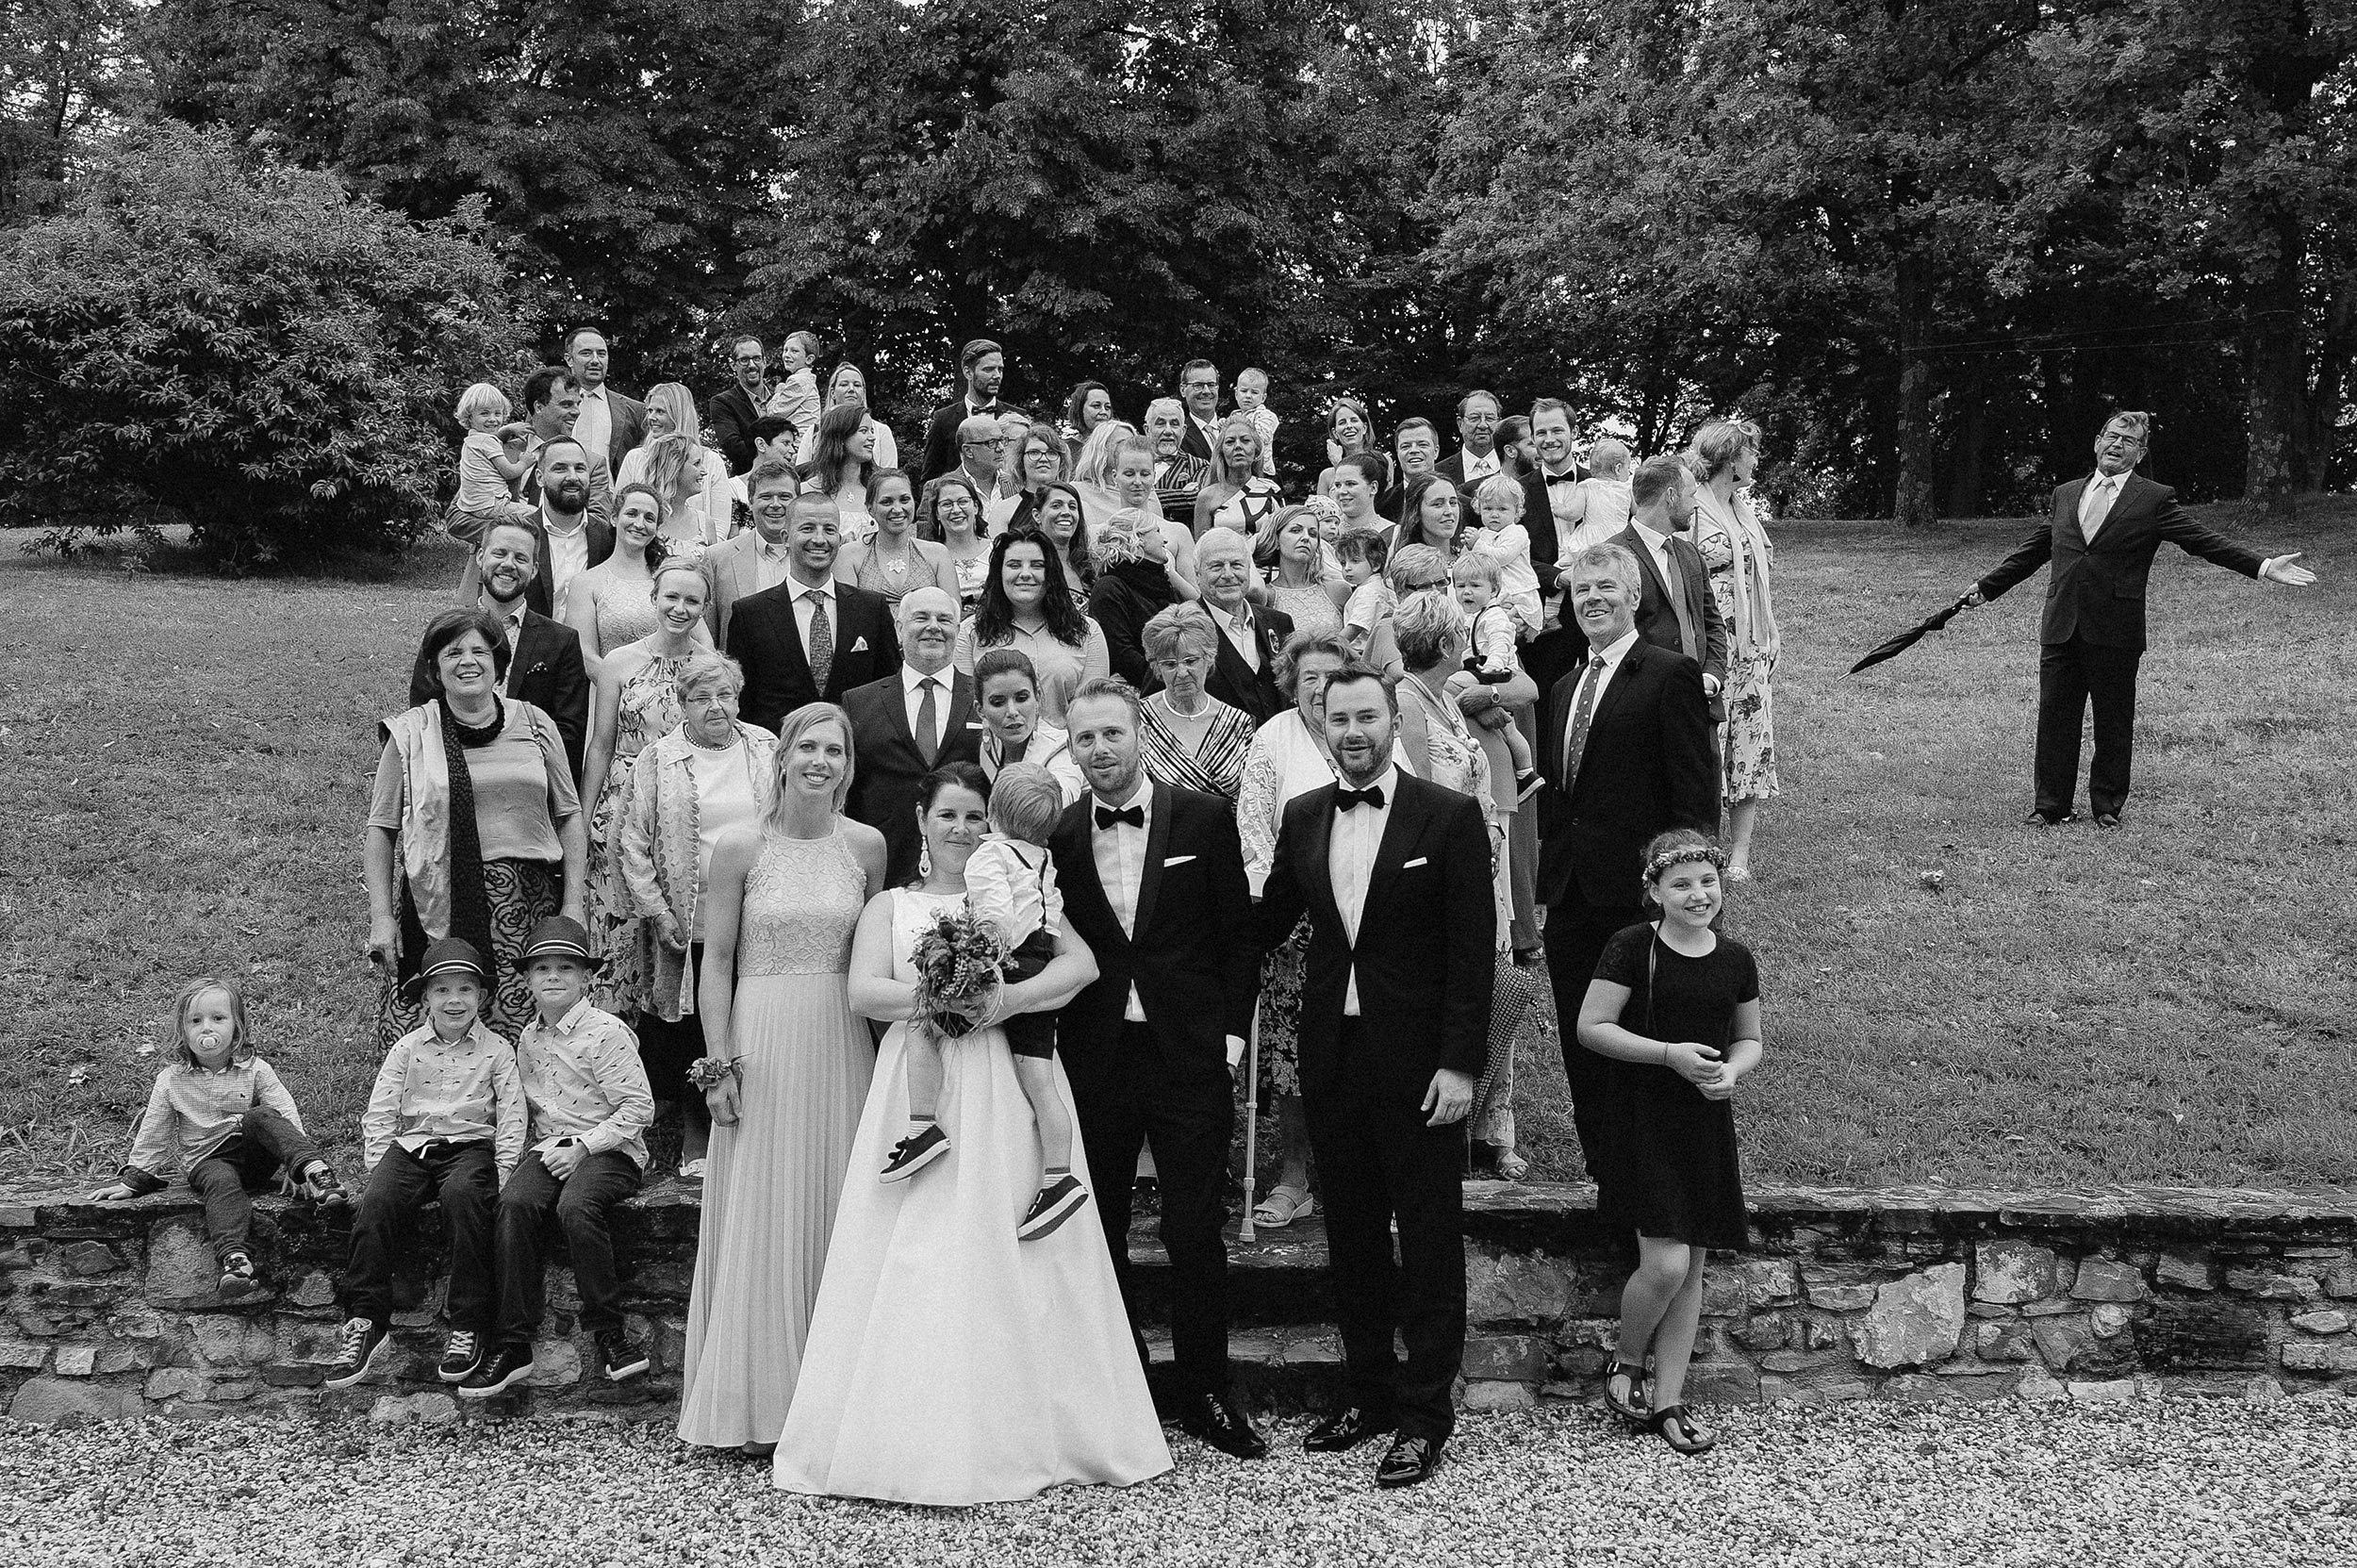 Wedding in Italy. Impatient guest protests during the group photo.